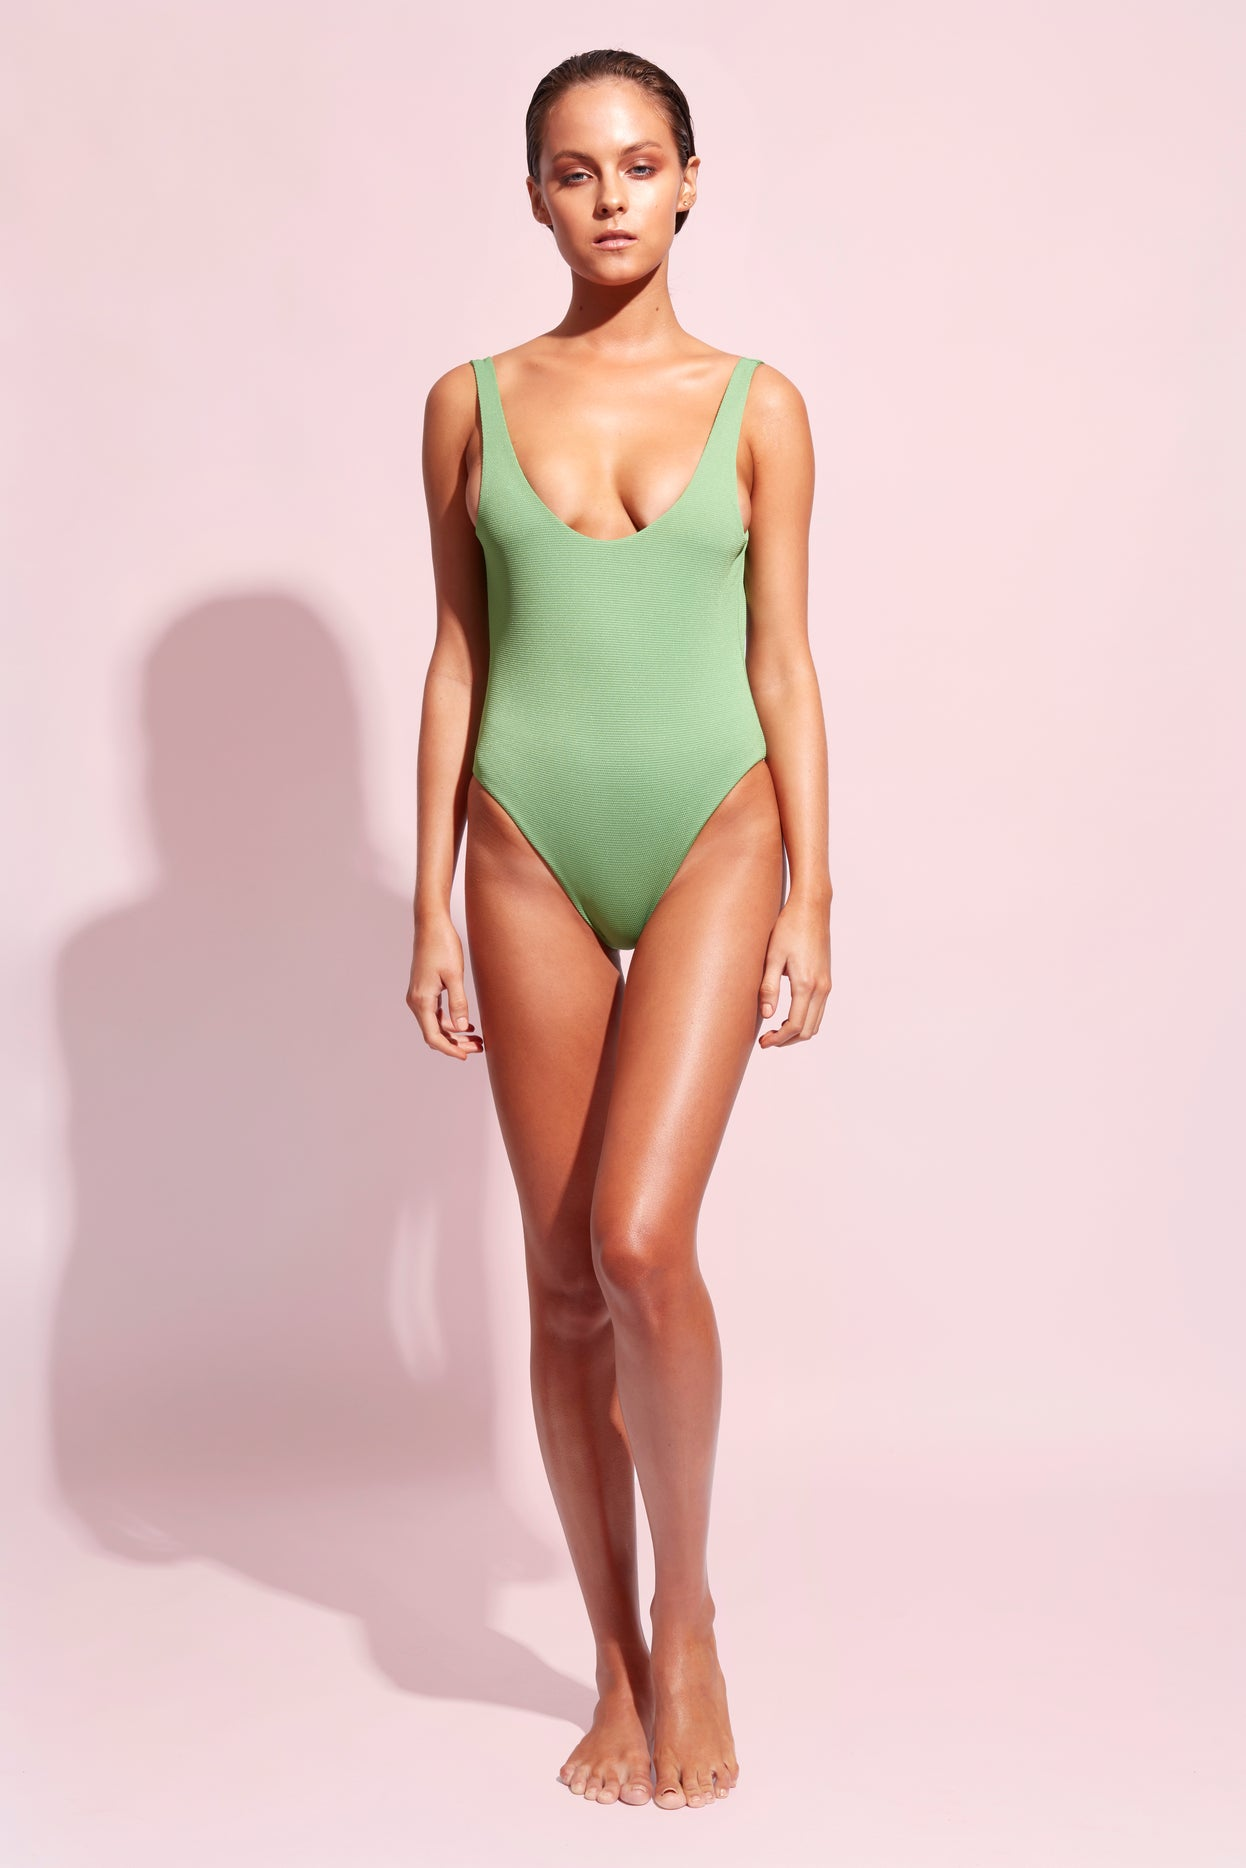 ALEXA ONE PIECE - SPEARMINT green - Wildaster